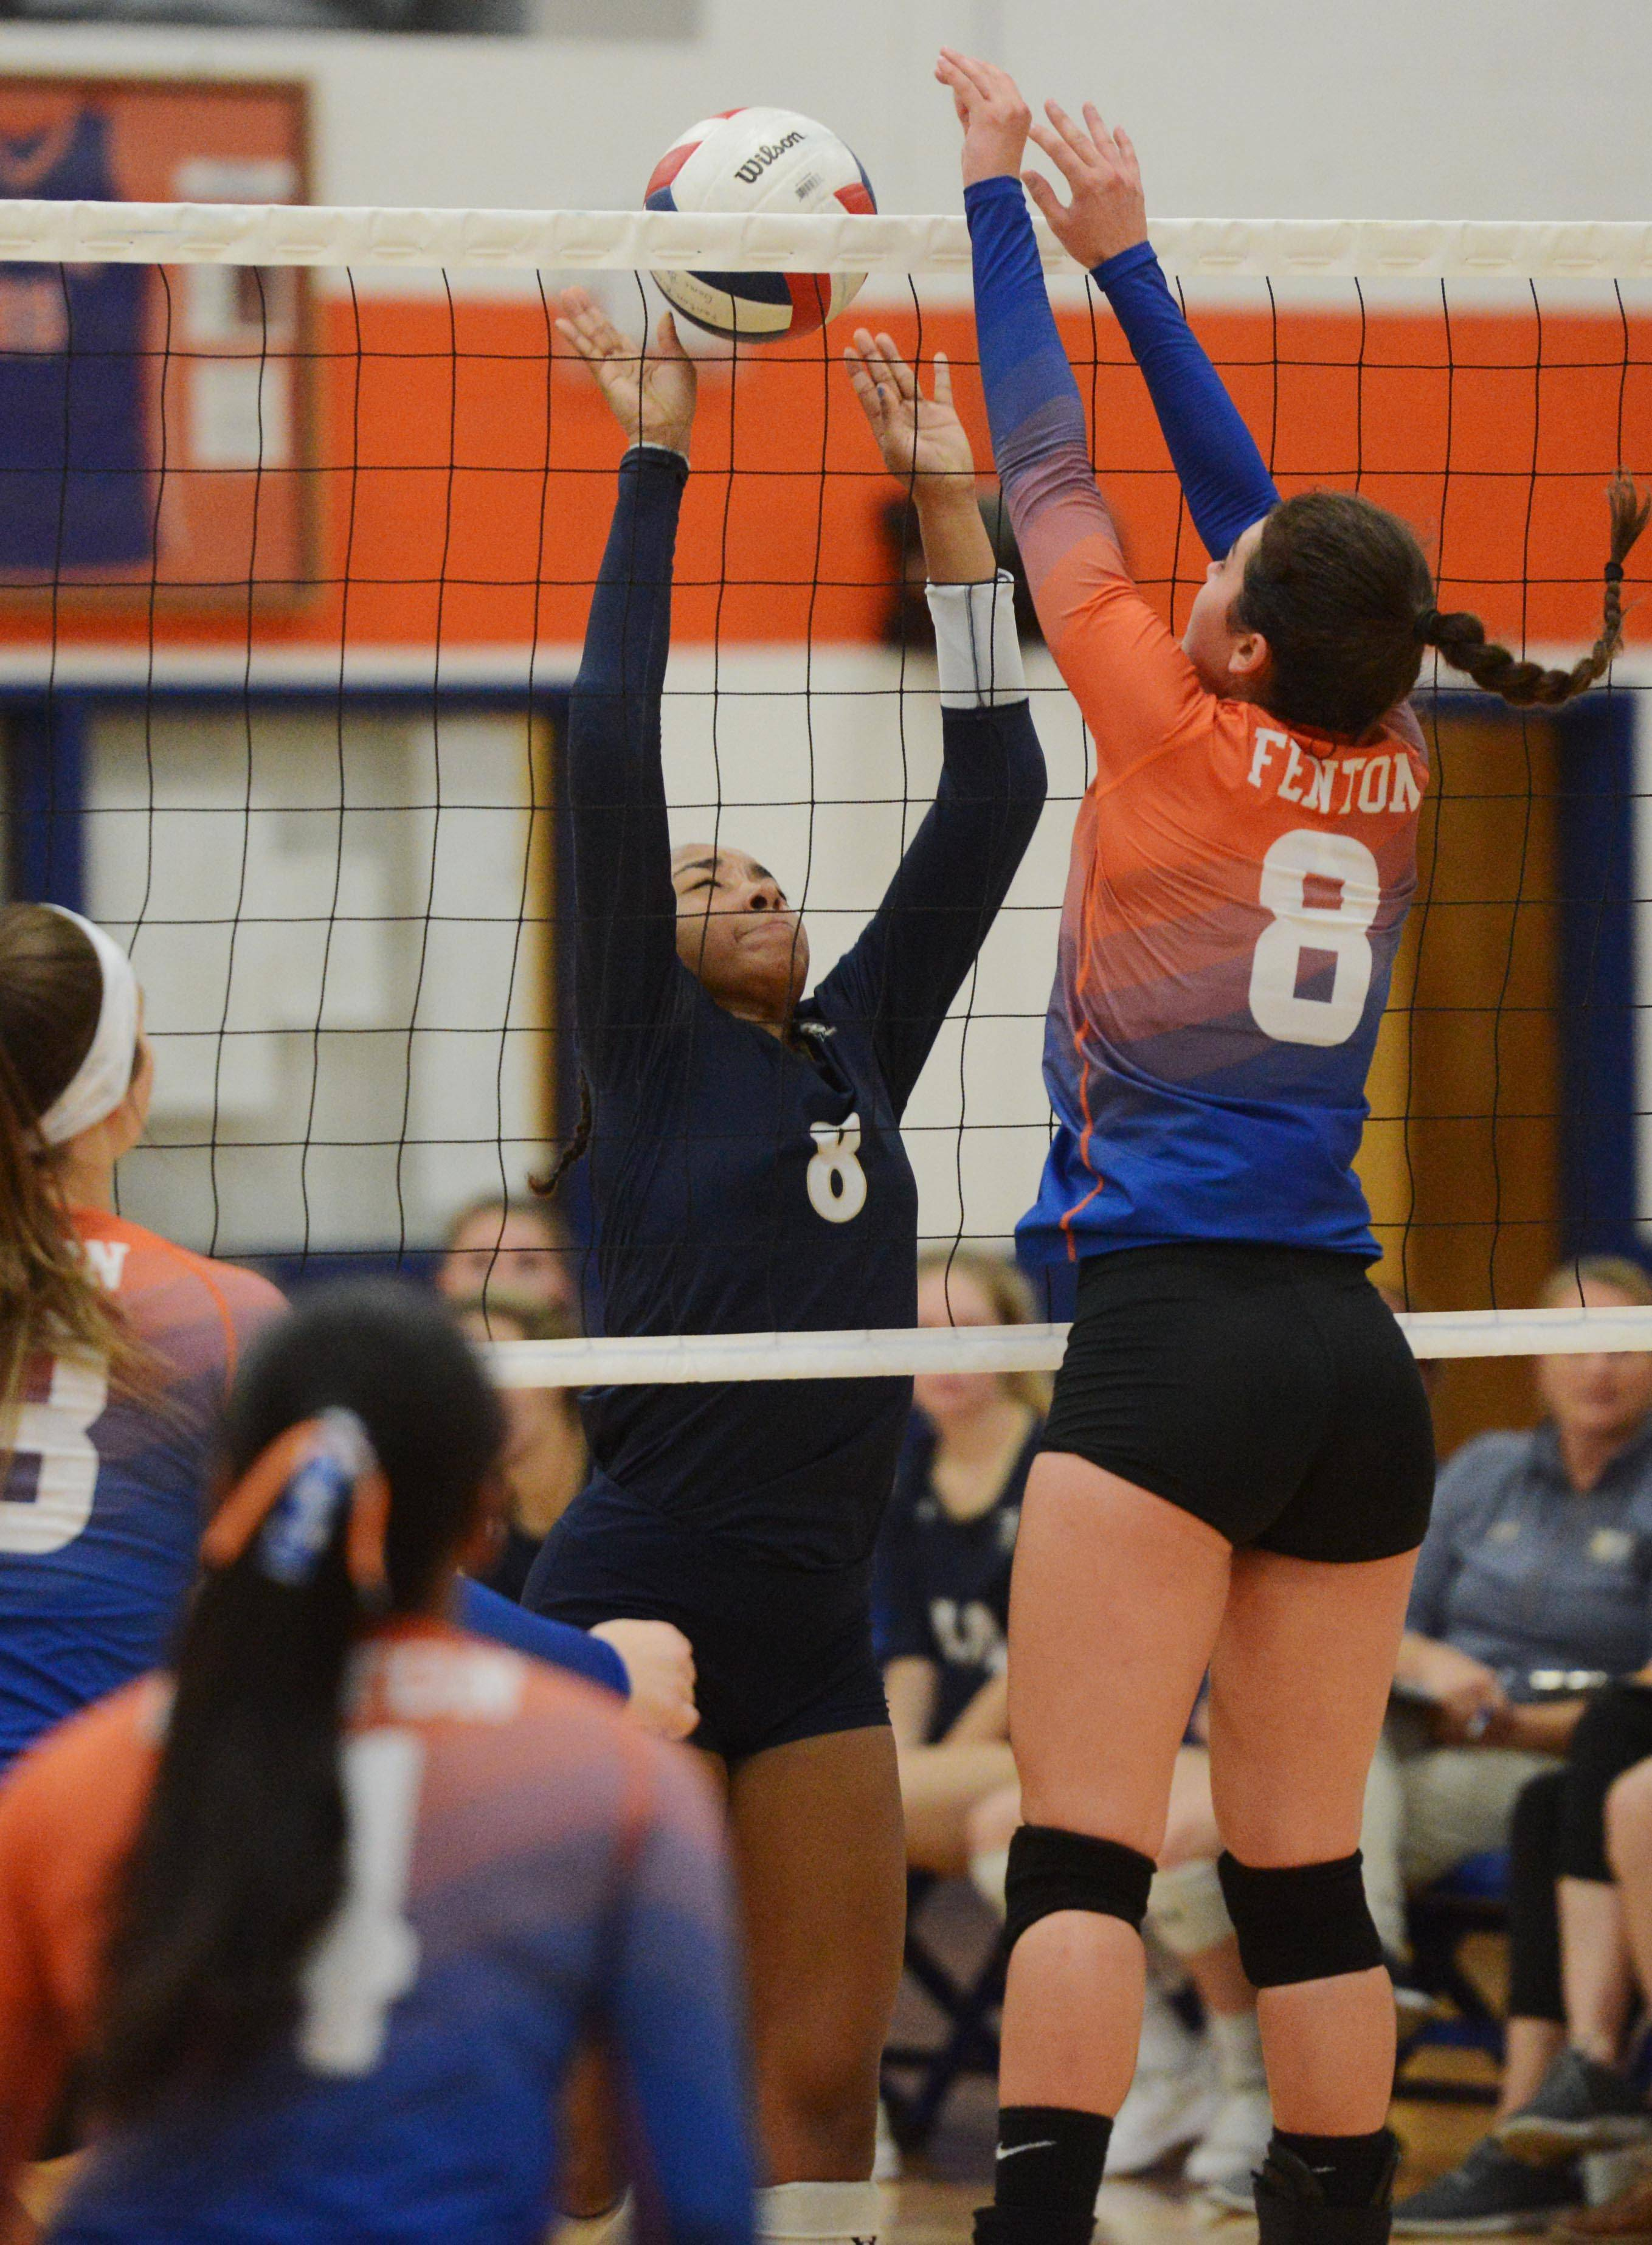 IC Catholic Prep's Maya Stovall, left, and Fenton's Mackenzie Miller battle at the net during Tuesday's girls volleyball match in Bensenville.